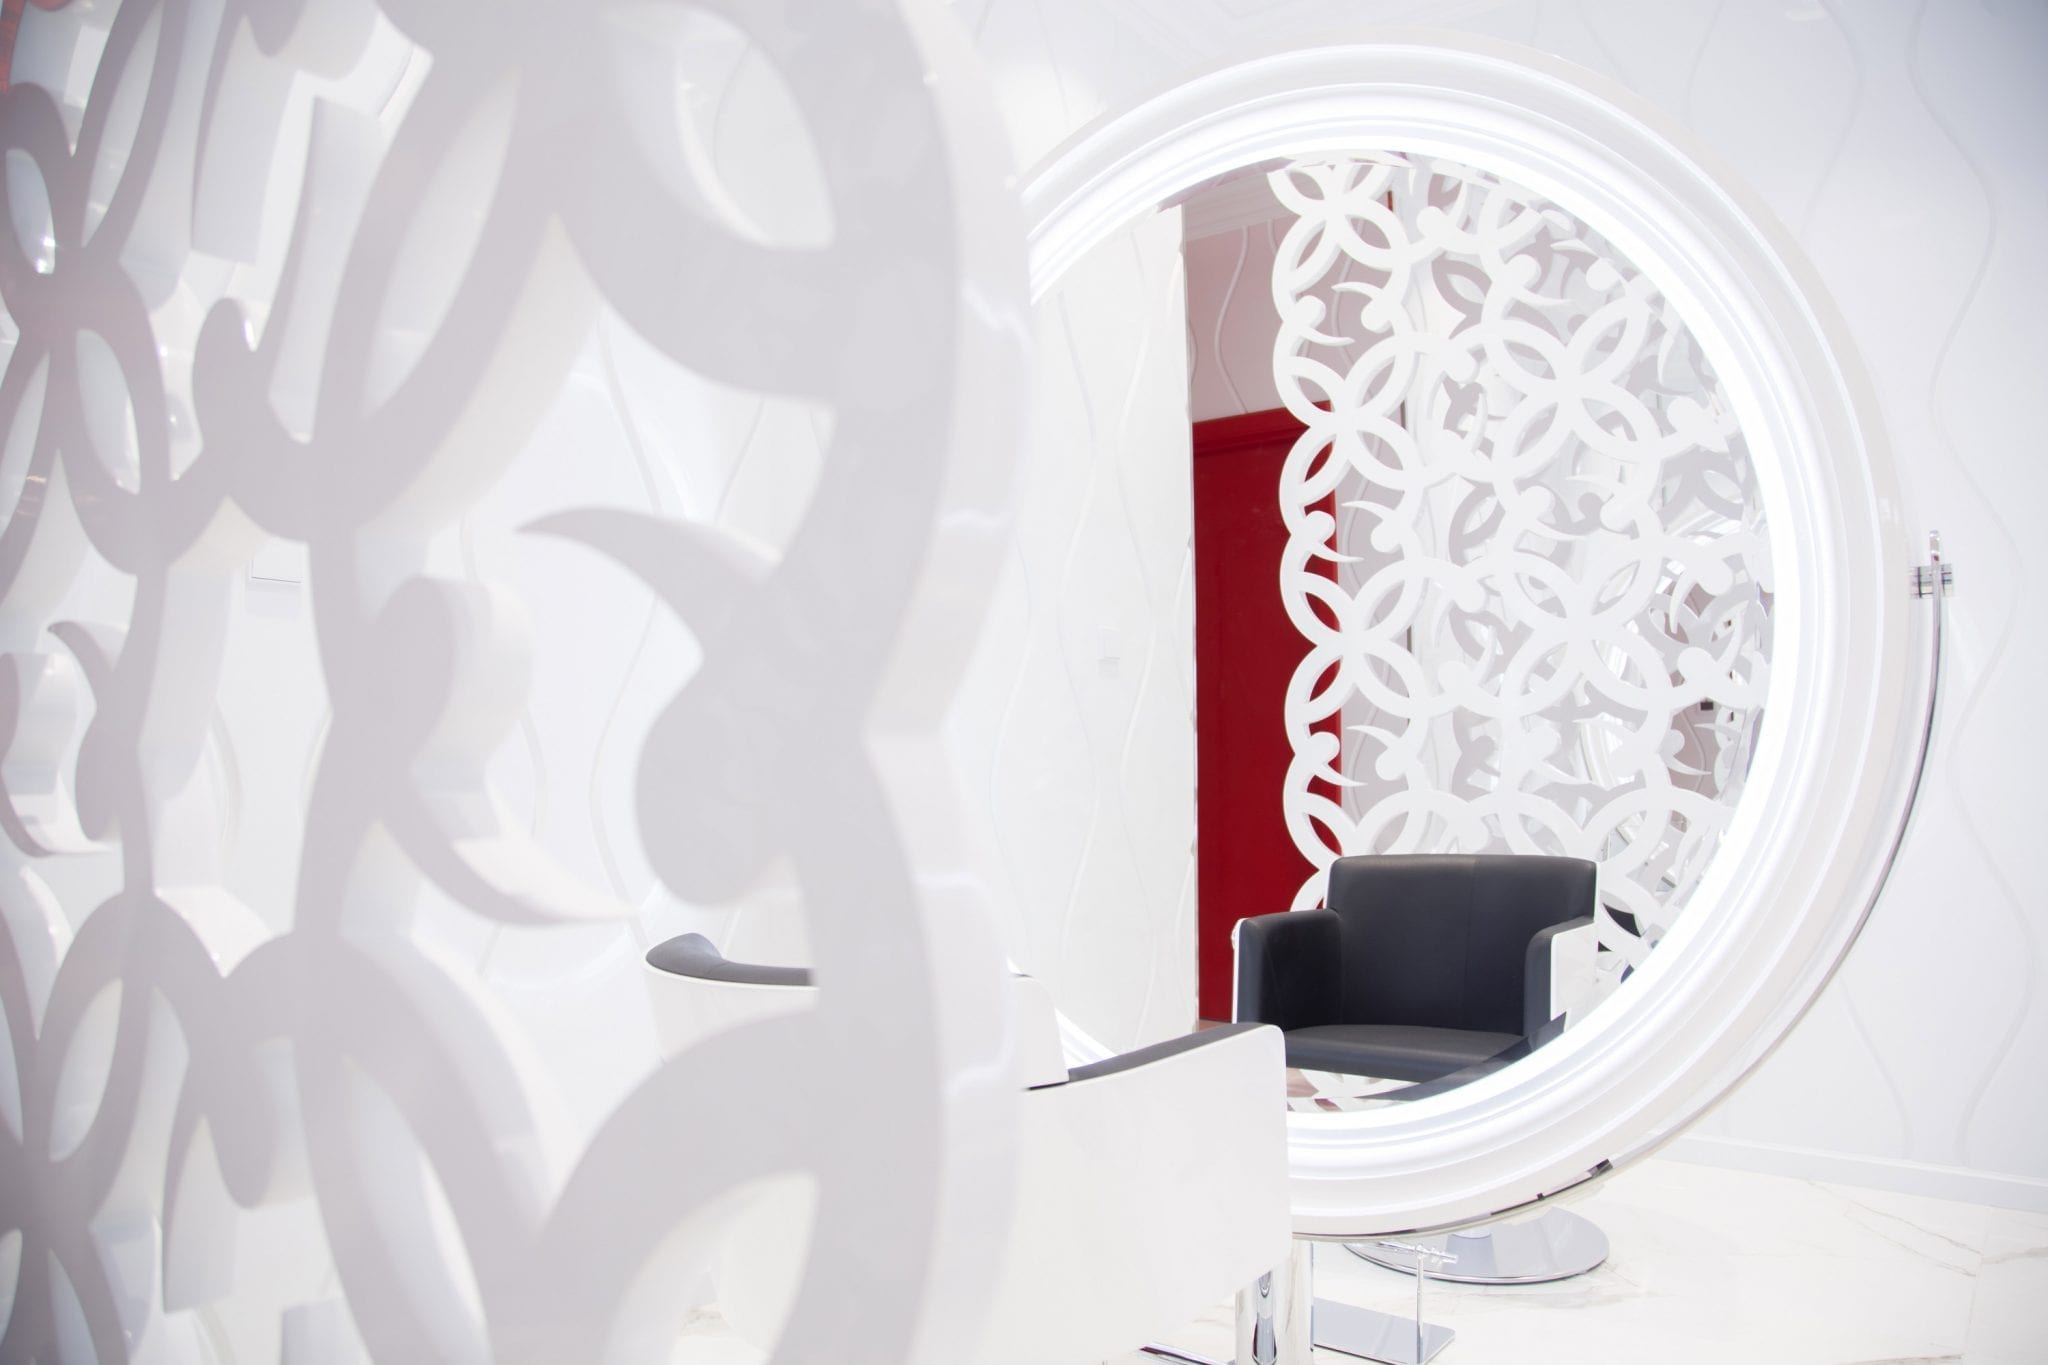 Aldo Coppola Salon in Doha, Qatar